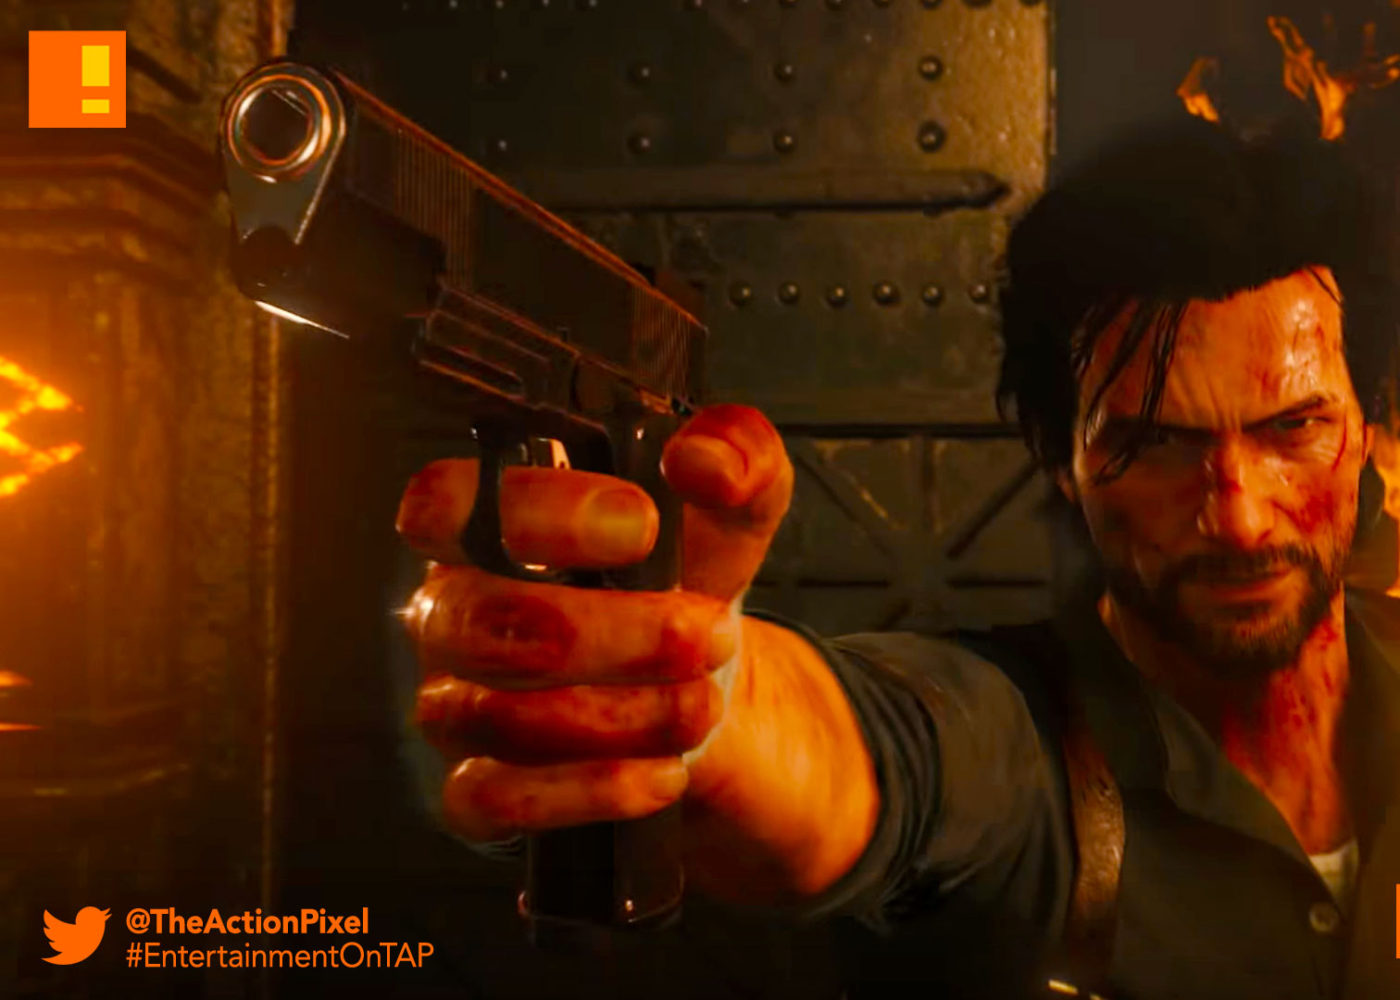 the evil within 2, the evil within II, bethesda, bethesda softworks,e3 2017, e3, electronic entertainment expo, the action pixel, entertainment on tap,gameplay, gameplay trailer, sebastian, lily,